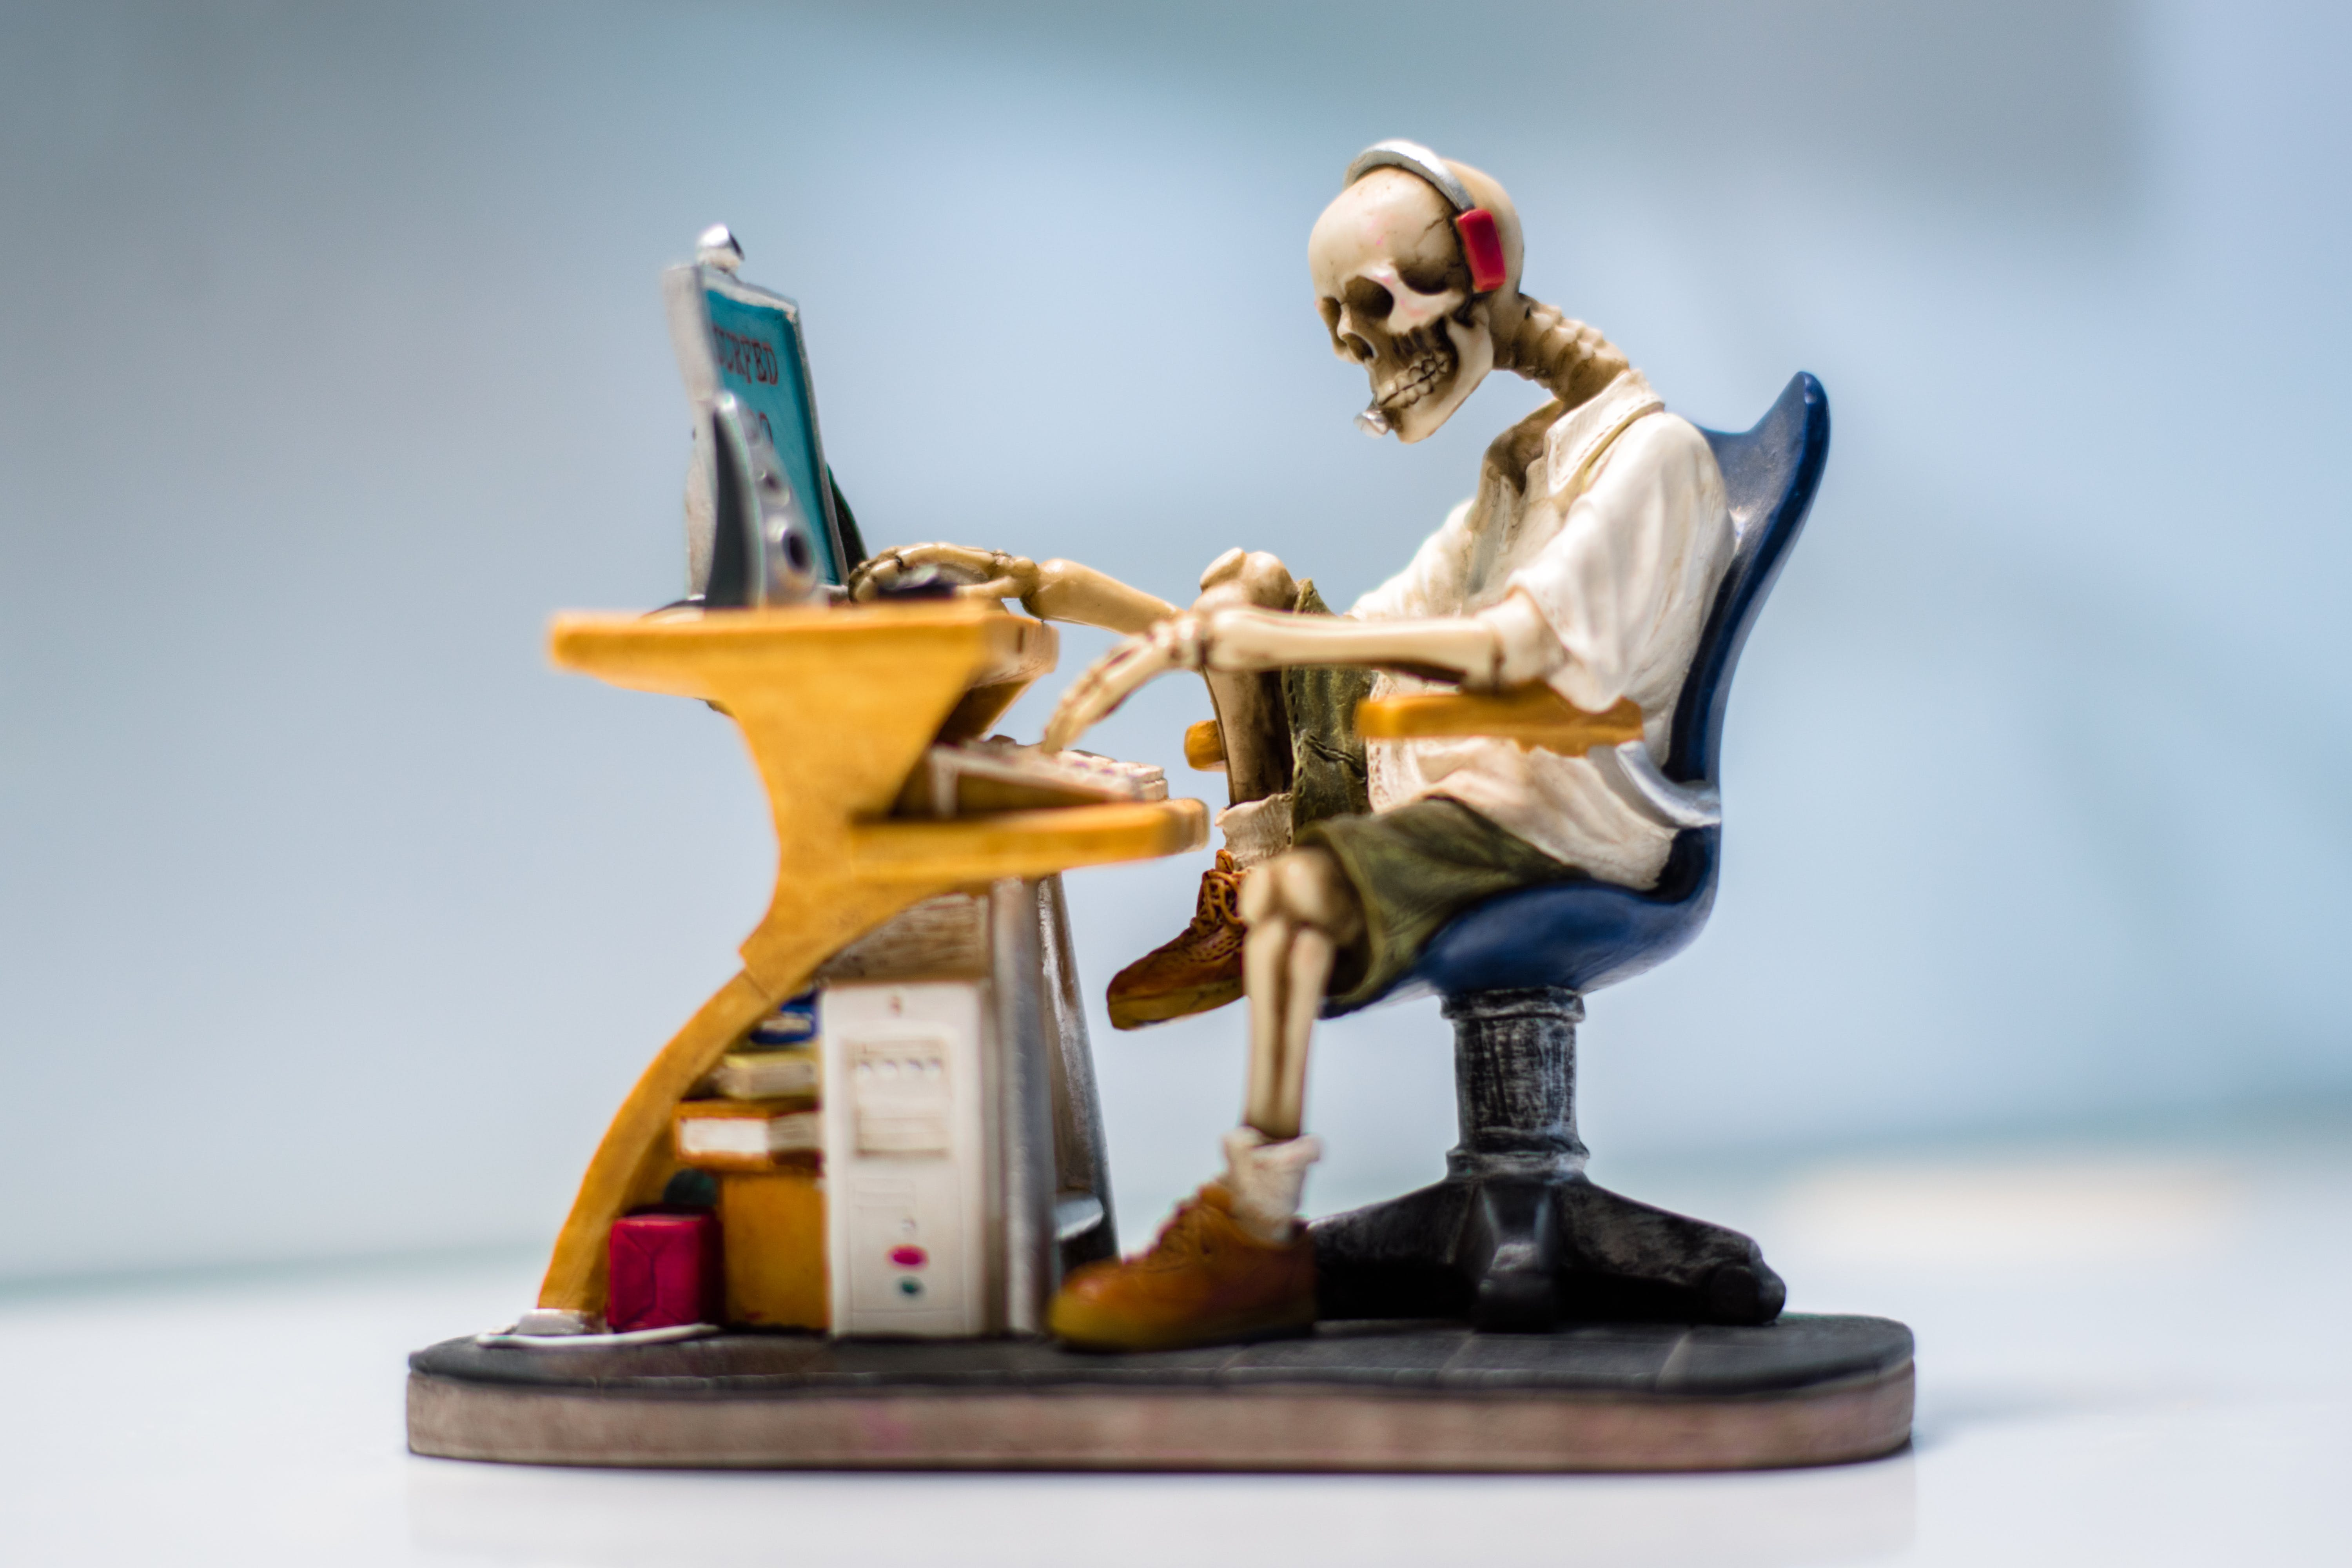 Figurine of Human Skeleton Sitting Infront of Computer